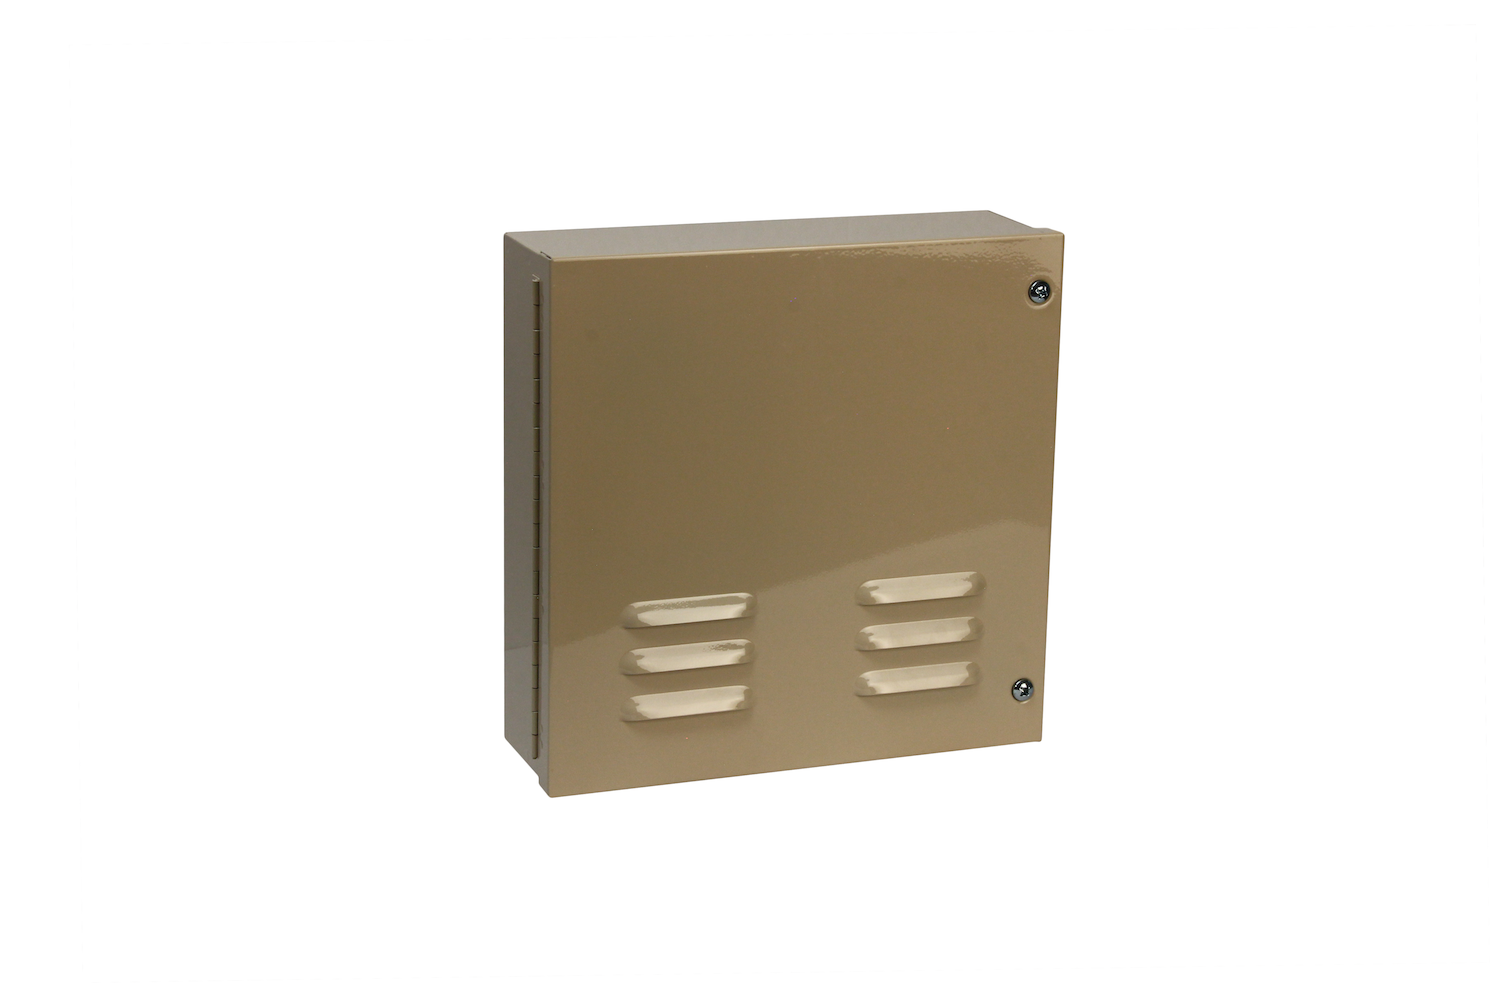 "#1000 Series Bell Box / Hinged   Overall dimensions 11 x 11 x 3 1/2"" 20 ga electro—galvanized steel Individual weight 10 lbs Master carton 14 x 14 x 8"" Gloss beige powder coating  With 12v 10"" burglar bell & plunger type Tamper switches installed / stainless screws included"